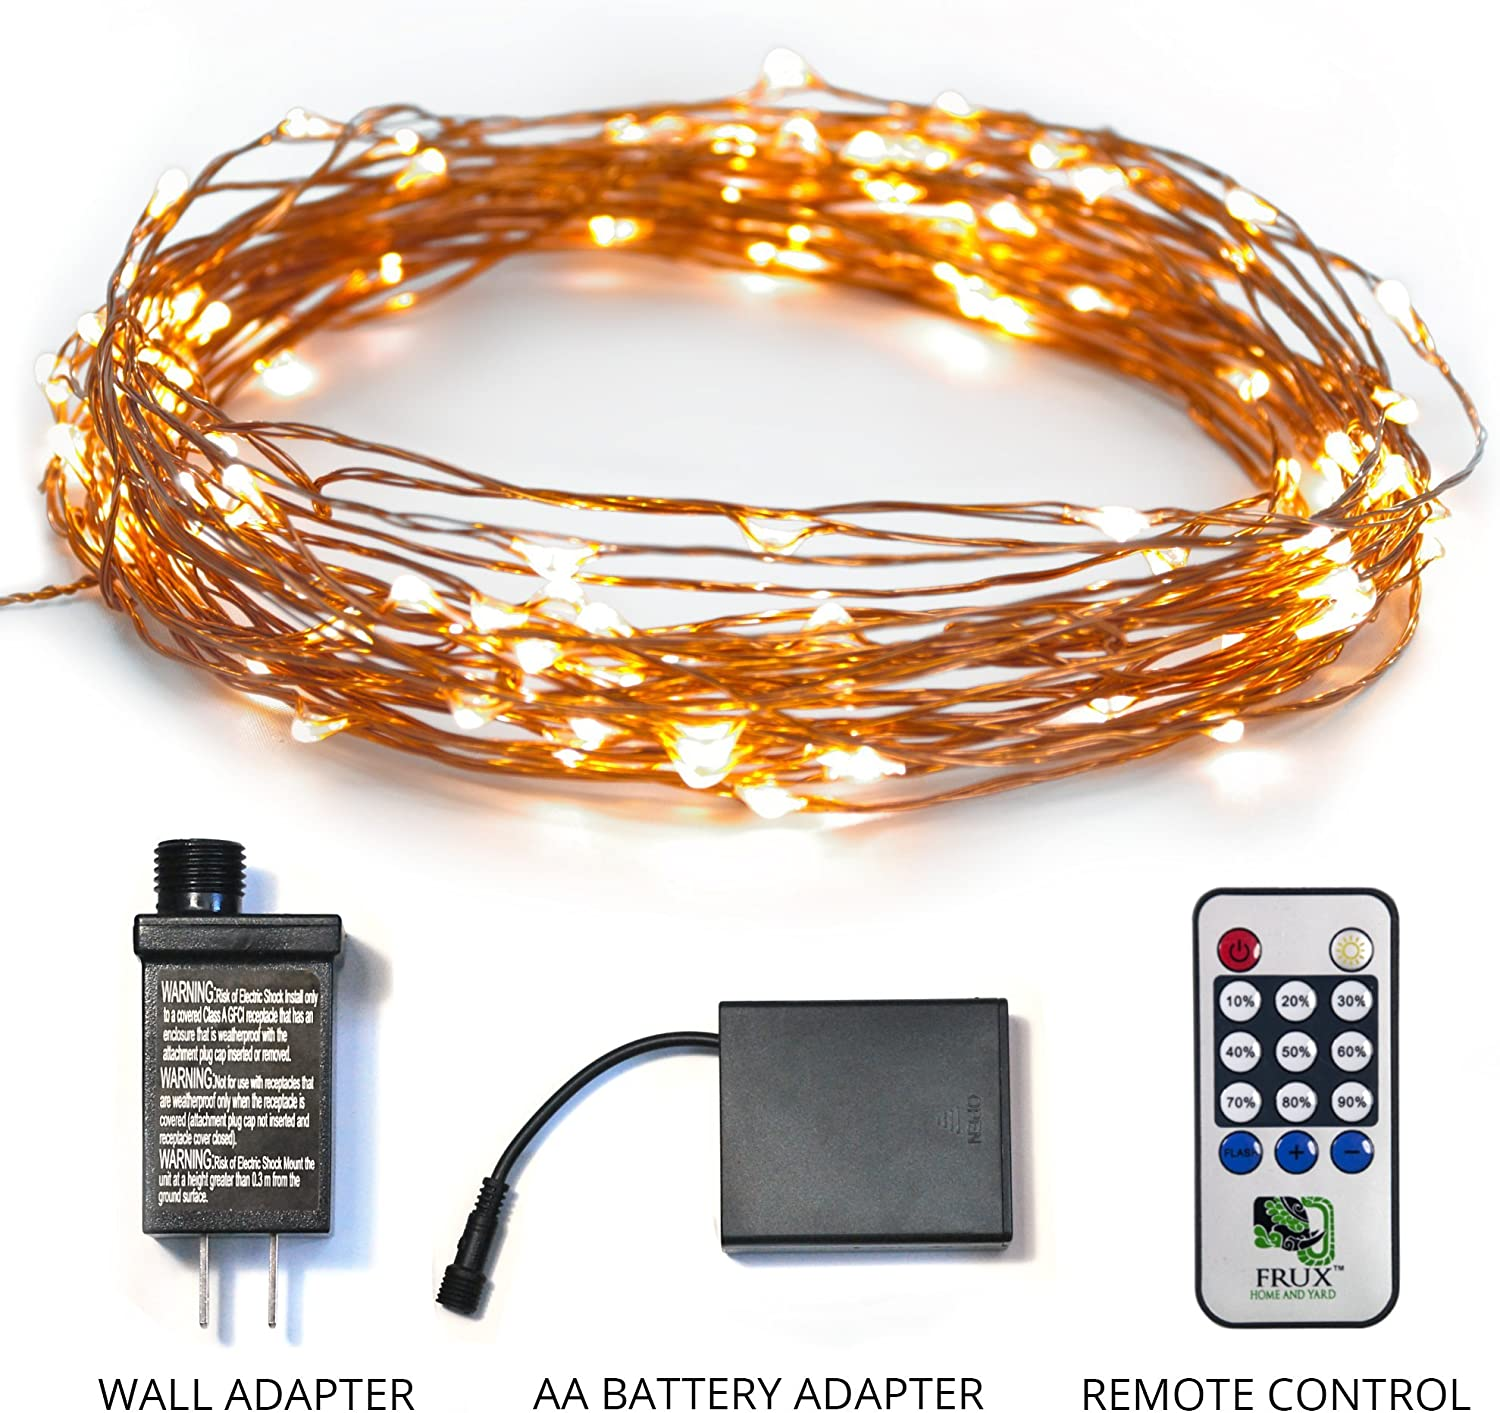 Amazon Com Twinkling Led Fairy String Lights Fully Waterproof Indoor Outdoor 39ft 100 Bulb Standard Plug In Battery Powered Warm White Copper Wire Decorative Lighting With Remote Control Garden Outdoor